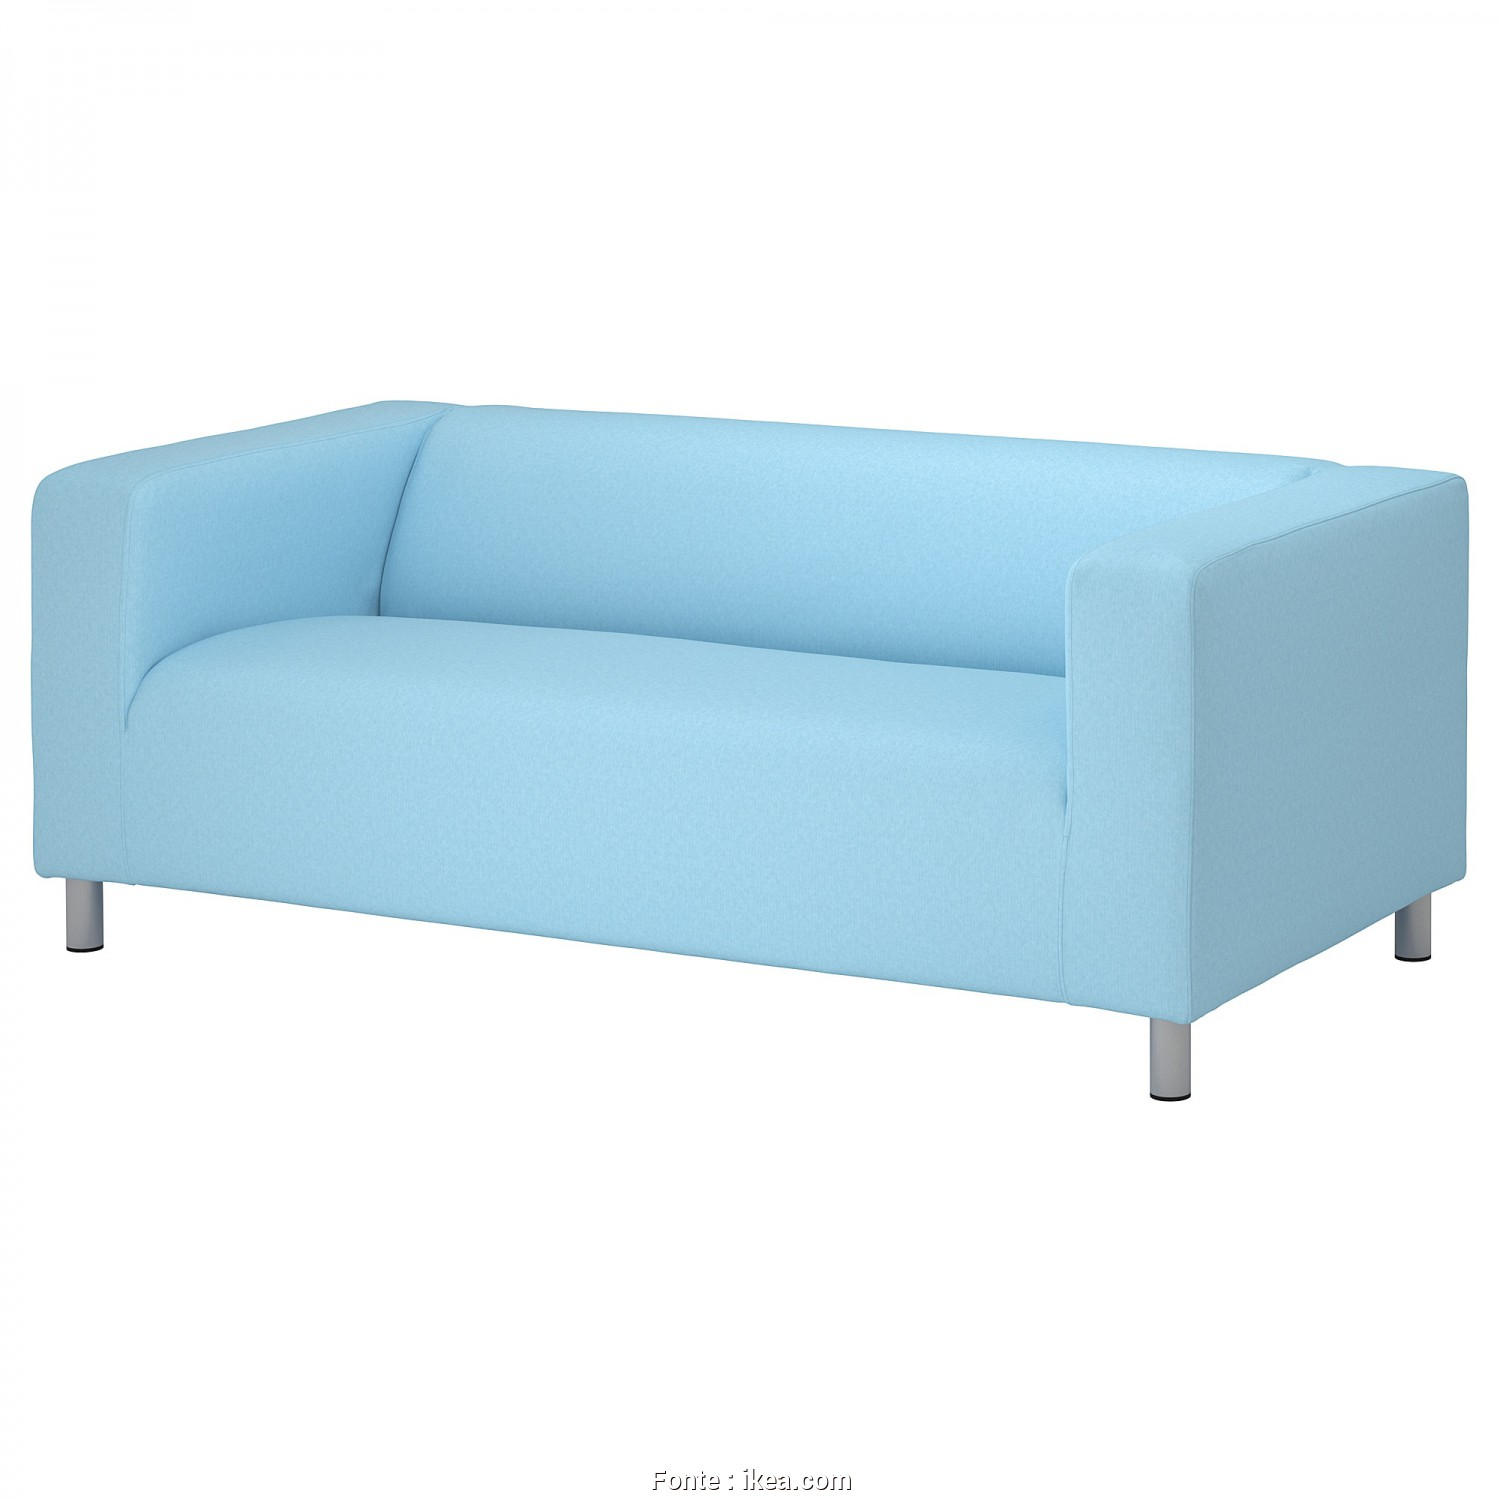 Sofa Klippan Ikea Funda, Incredibile KLIPPAN Cover, 2-Seat Sofa Vissle Light Blue